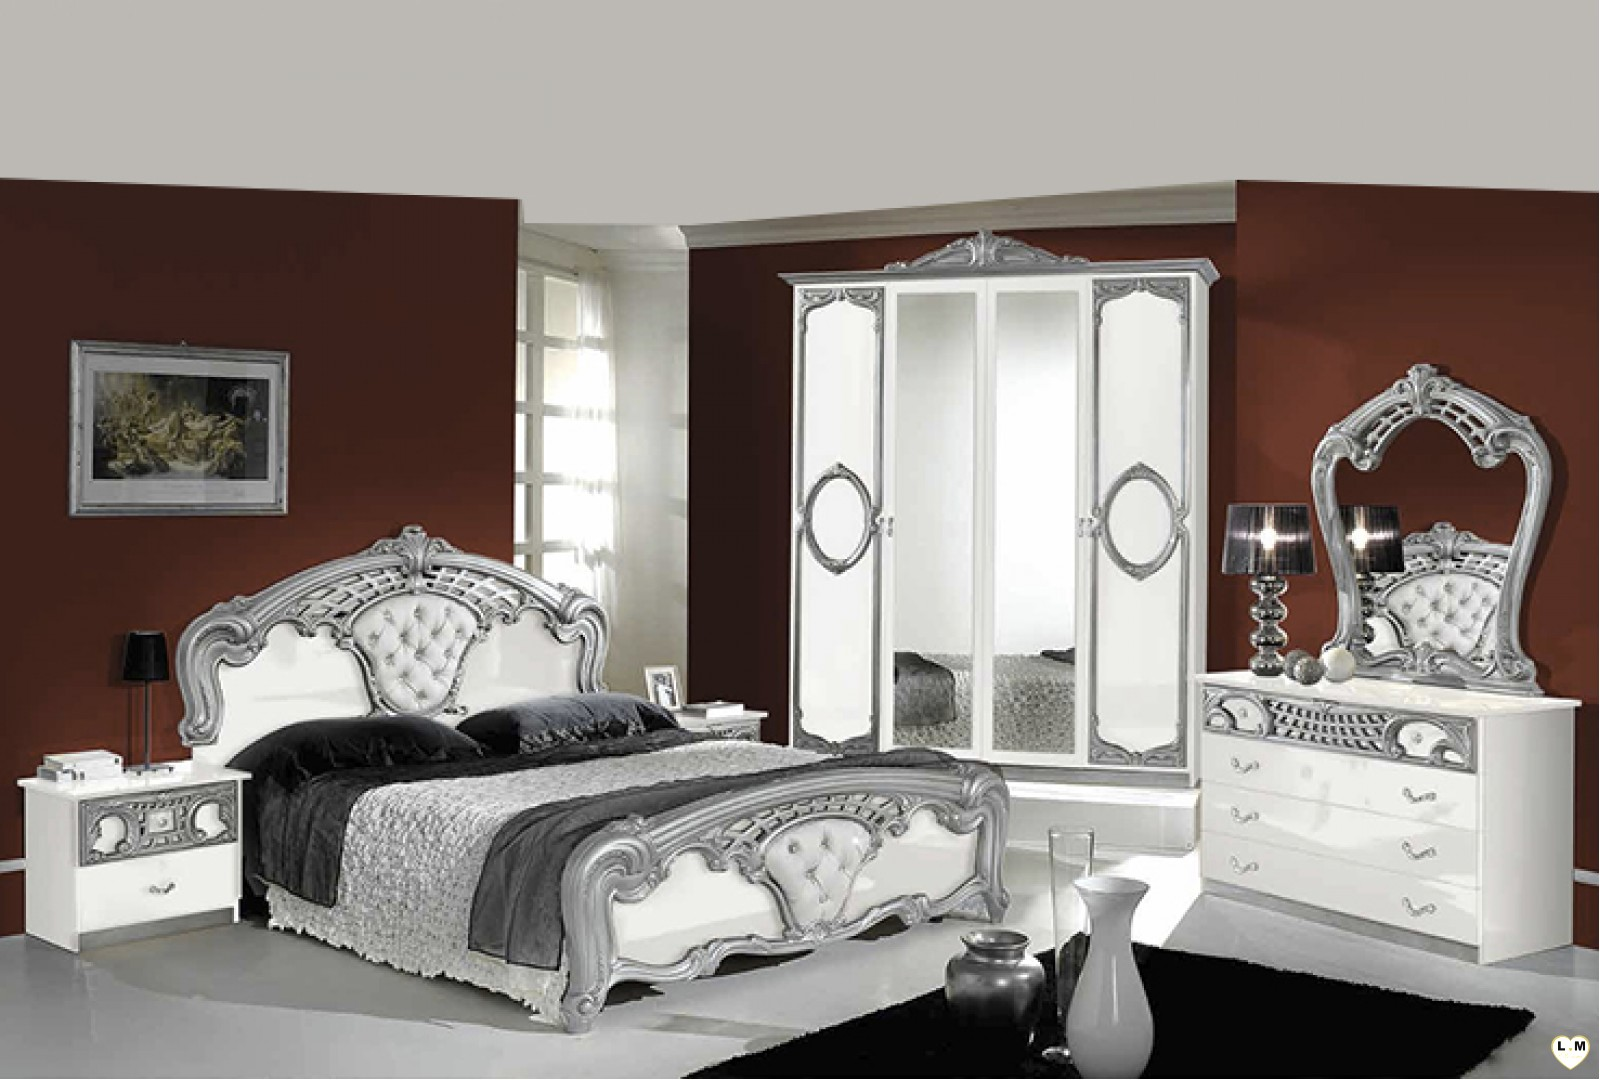 Perfect natal laqu blanc et argent ensemble chambre for Chambre complete adulte pas cher design